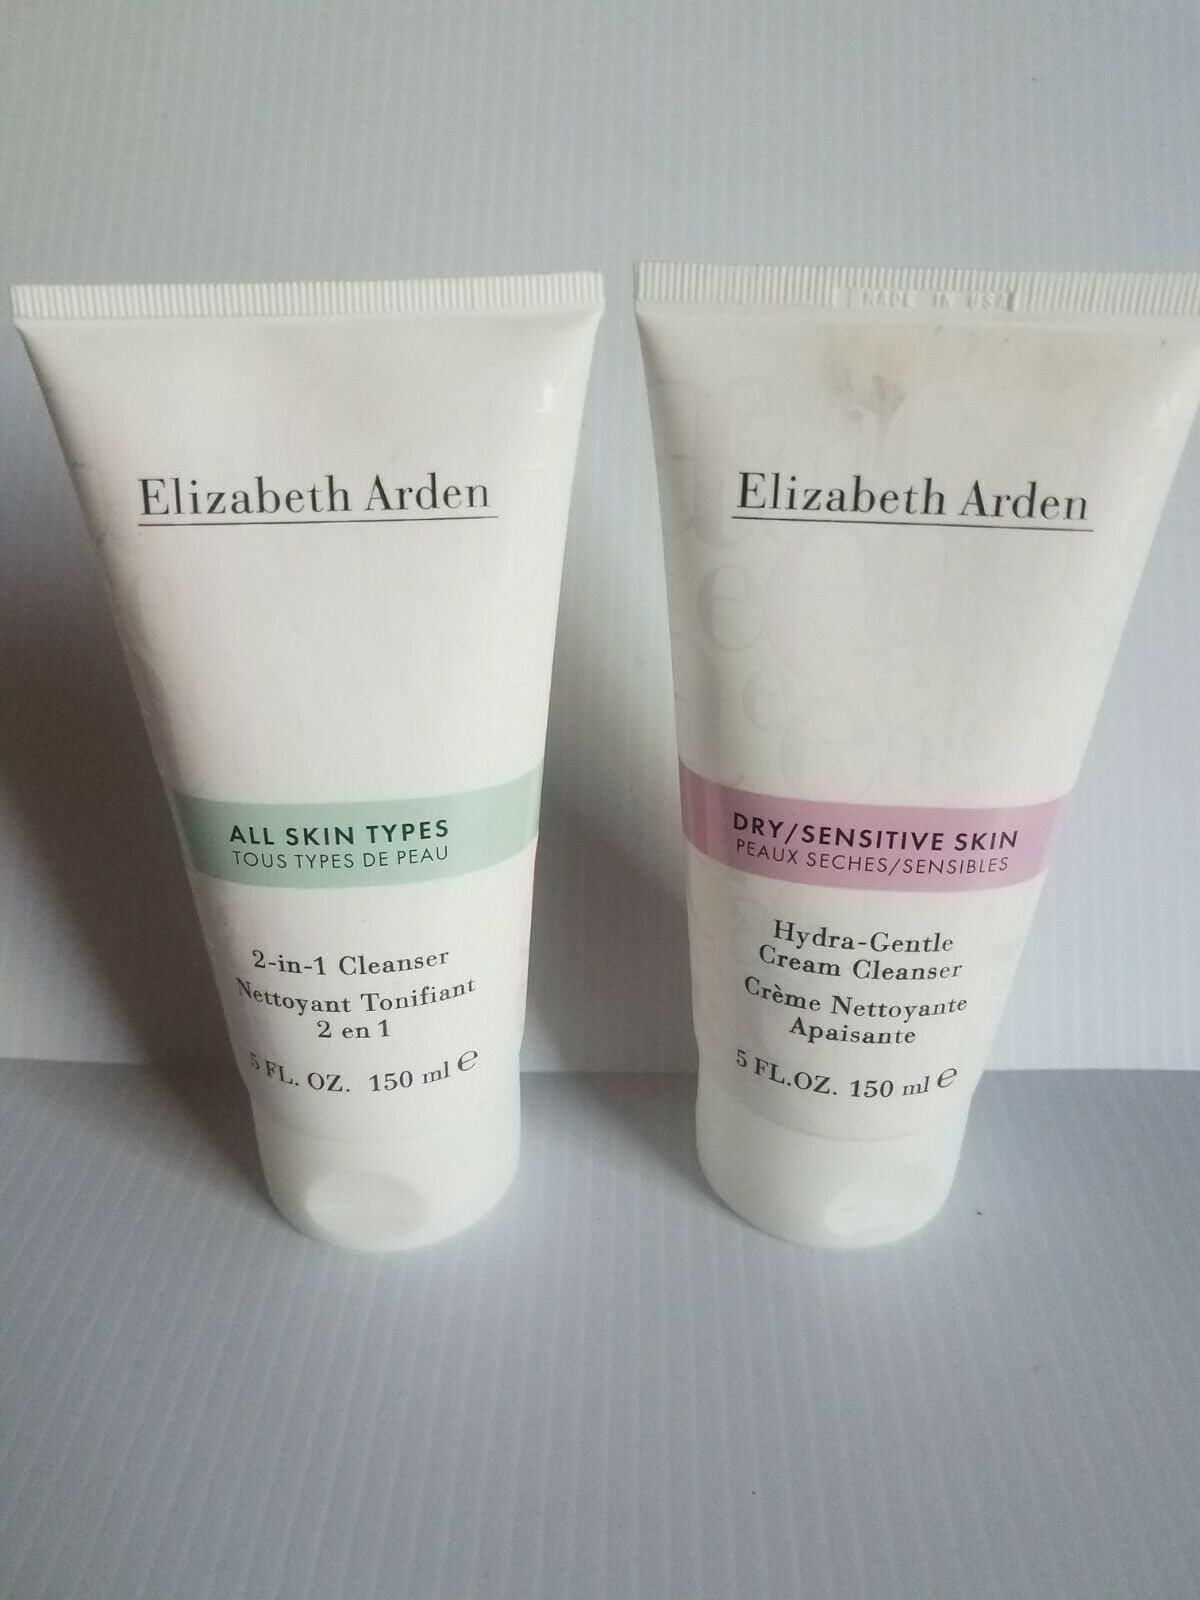 Primary image for 2 x Elizabeth Arden Cleanser 1- 2-in-1 All Types & 1 Dry Sensitive Skin 5 oz ea